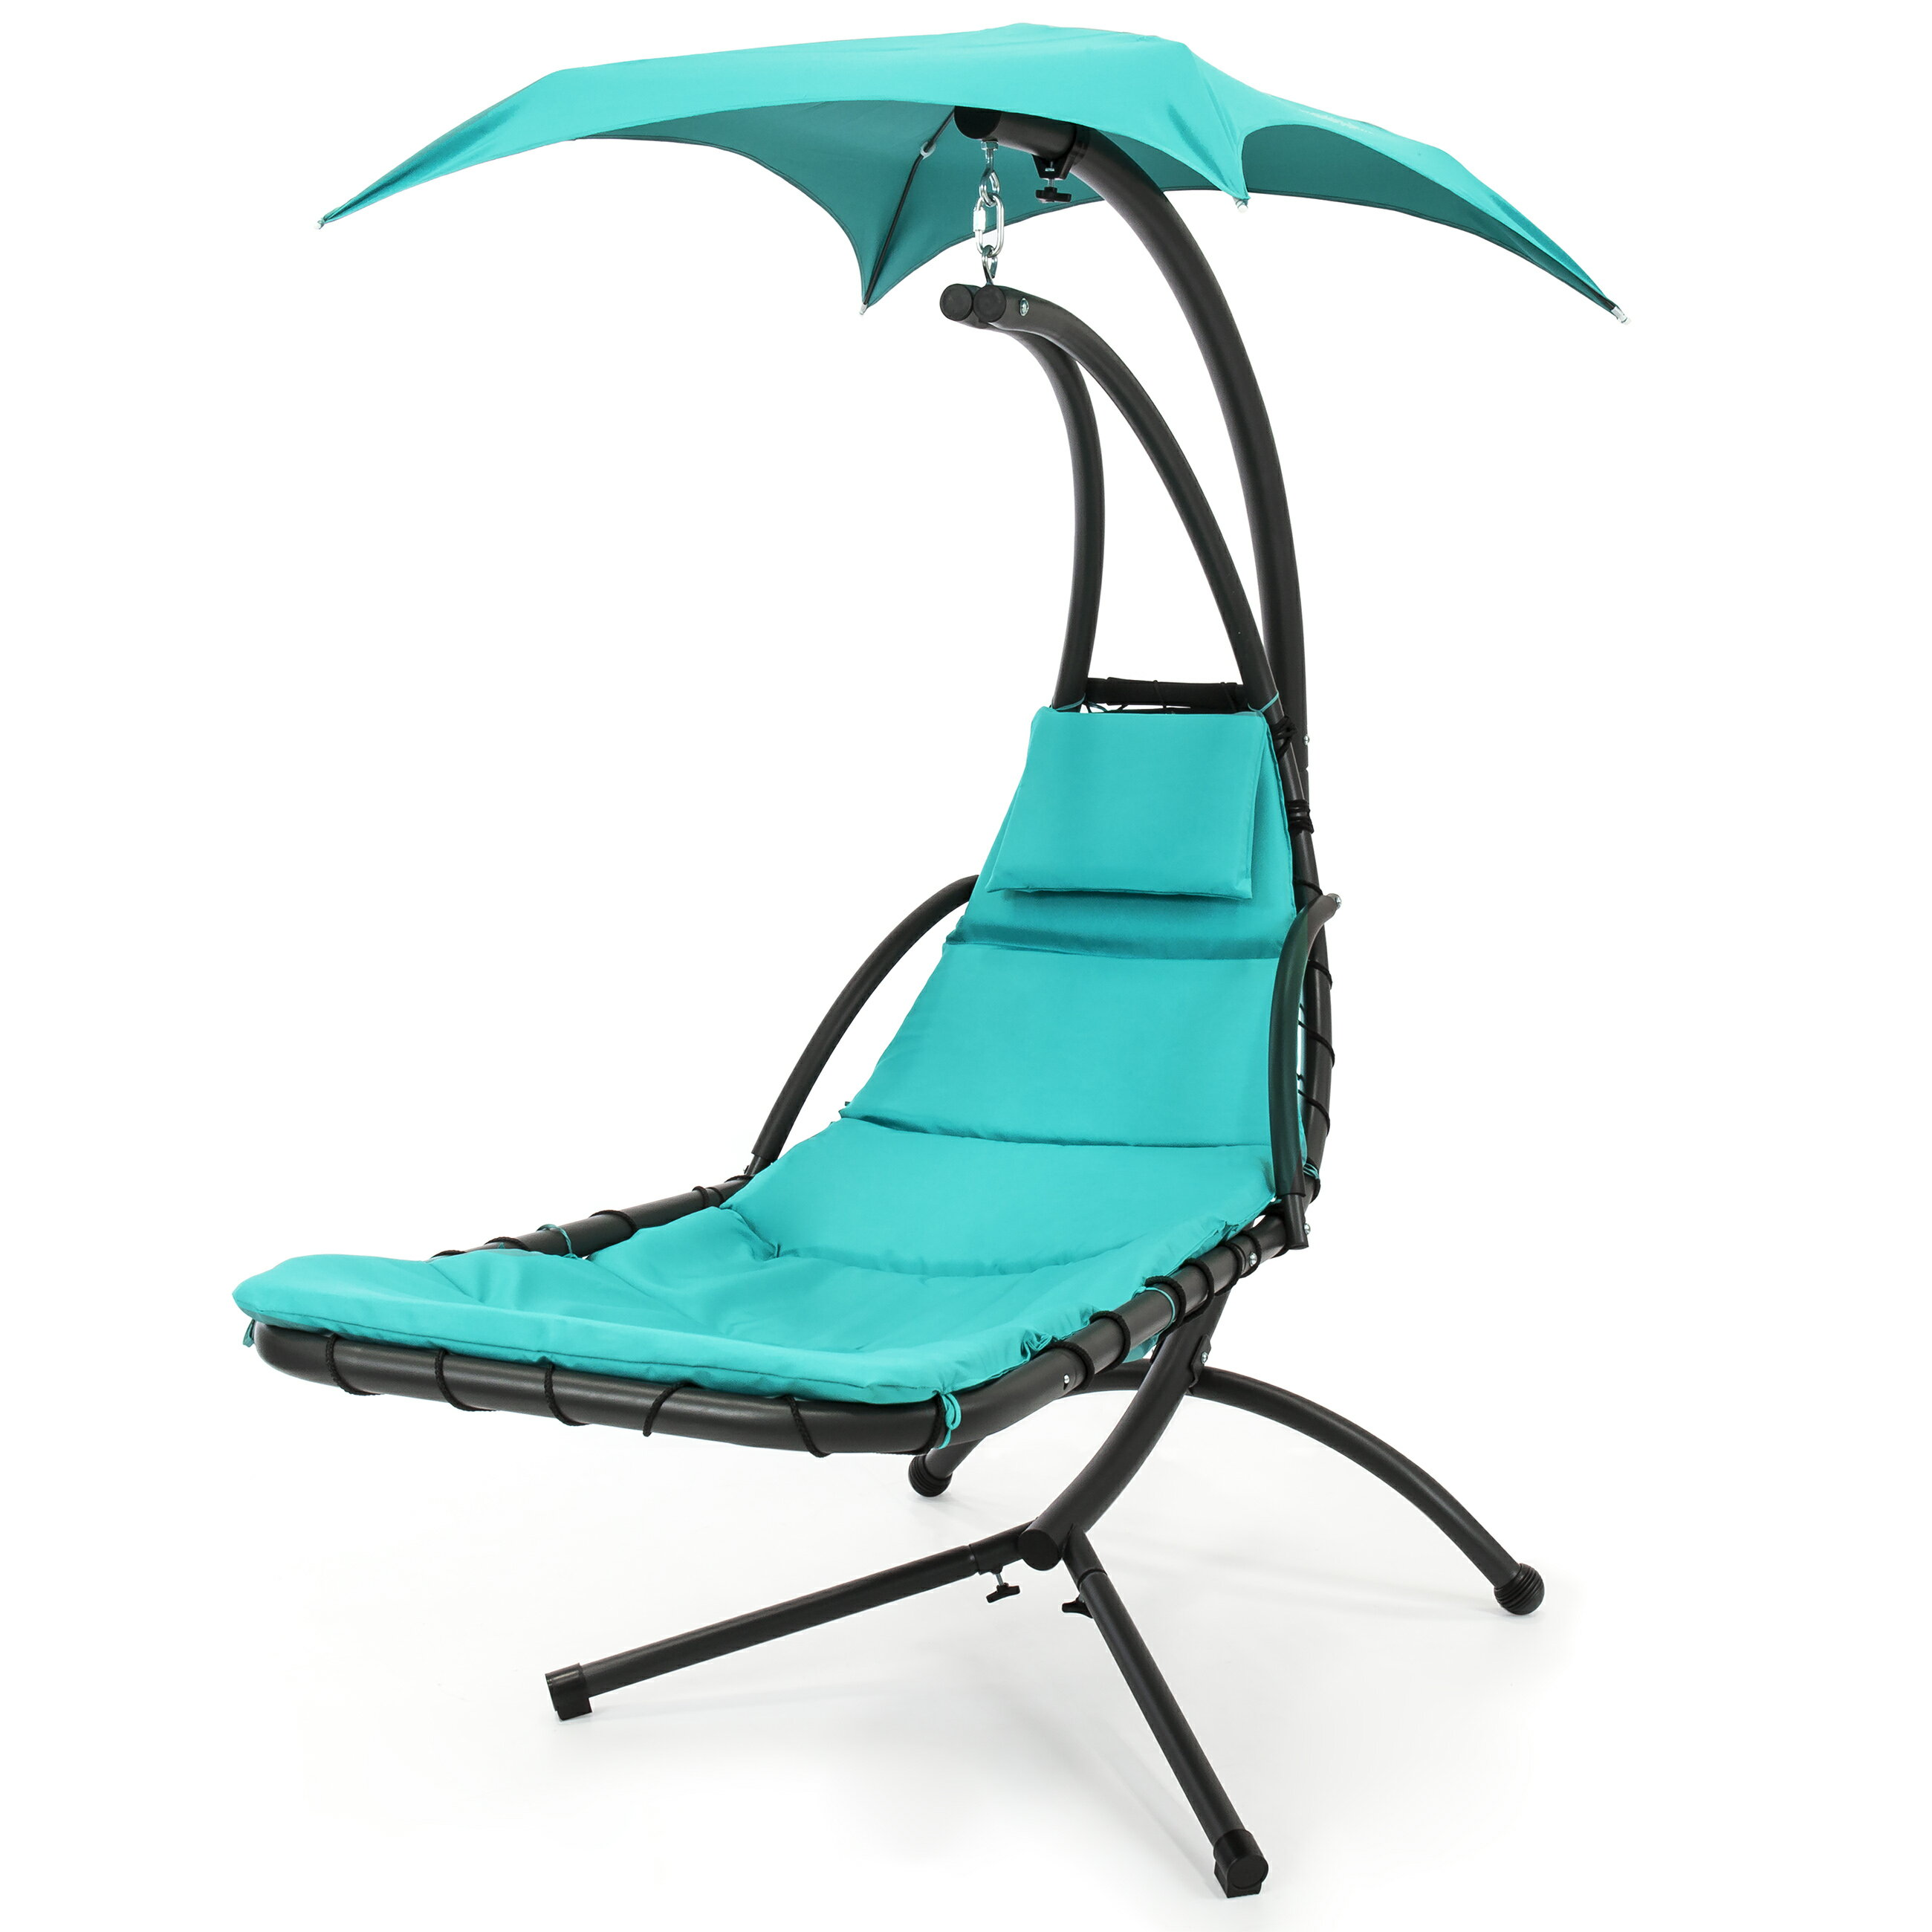 Best Choice Products Hanging Chaise Lounger Chair Arc Stand Air Porch Swing Hammock Chair Canopy (Teal) 1